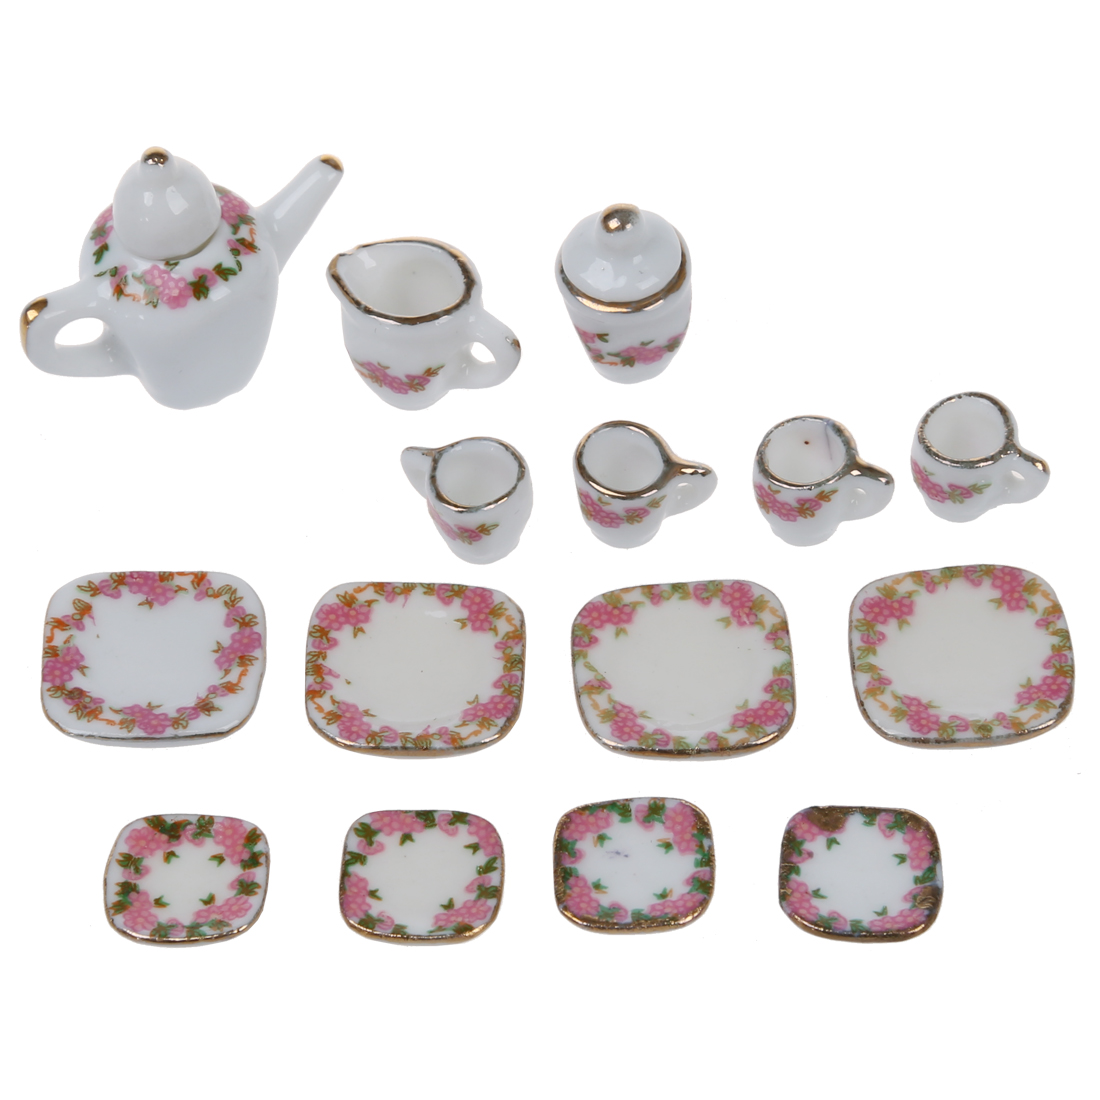 Pretend Play Methodical Fbil-set Of 15pcs 1/12 Dollhouse Miniature Dining Ware Porcelain Tea Set Pot+dish+cup+saucer Less Expensive